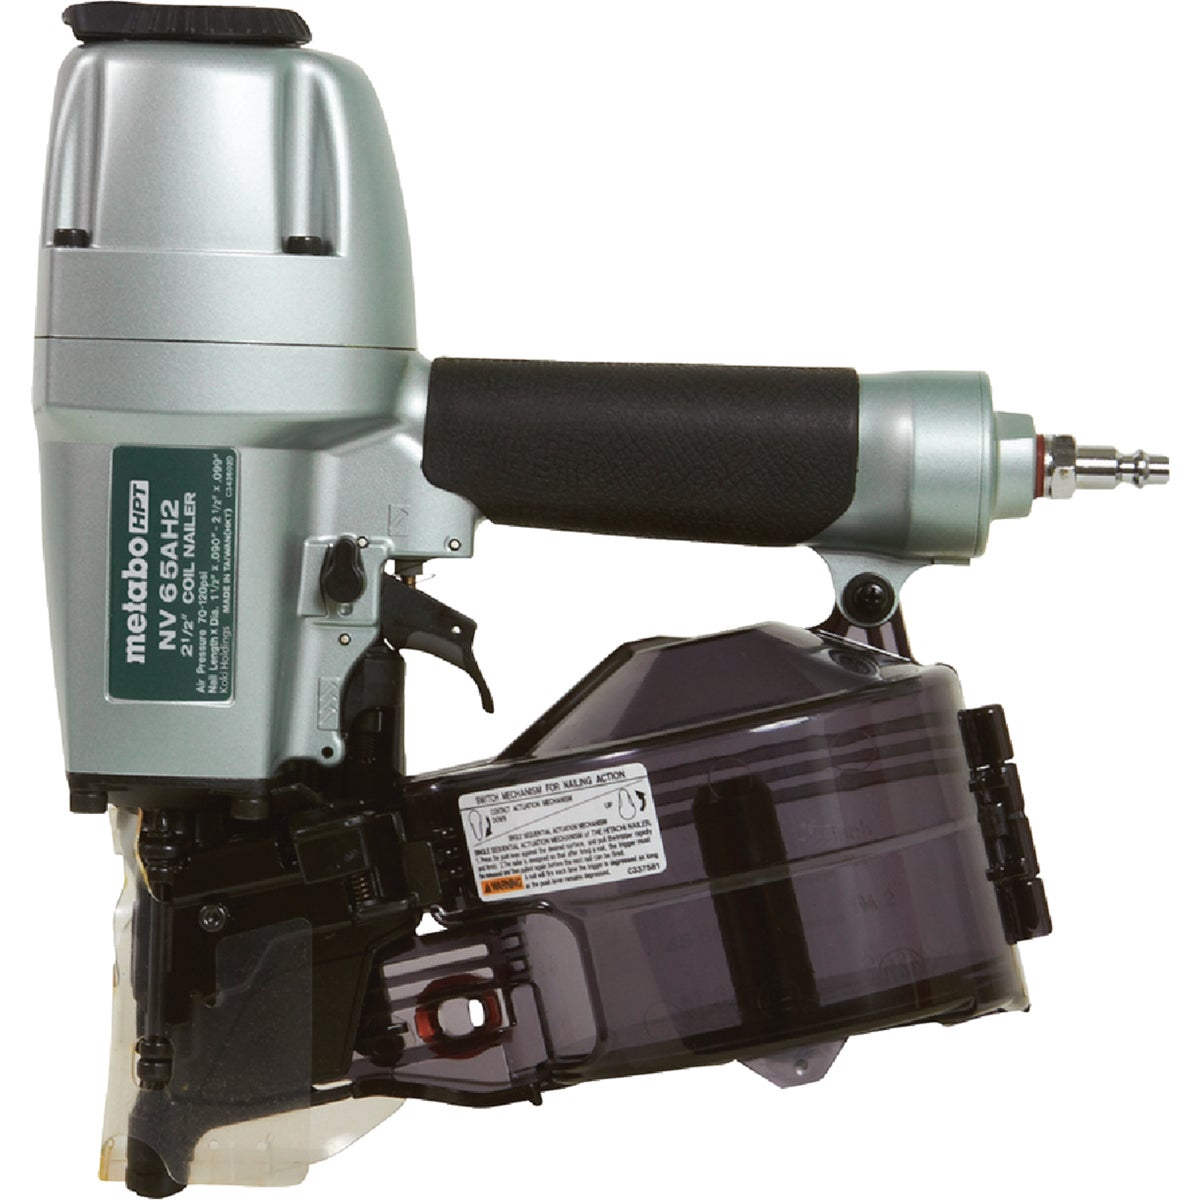 COIL SIDING NAILER - NV65AH by Hitachi Power Tools